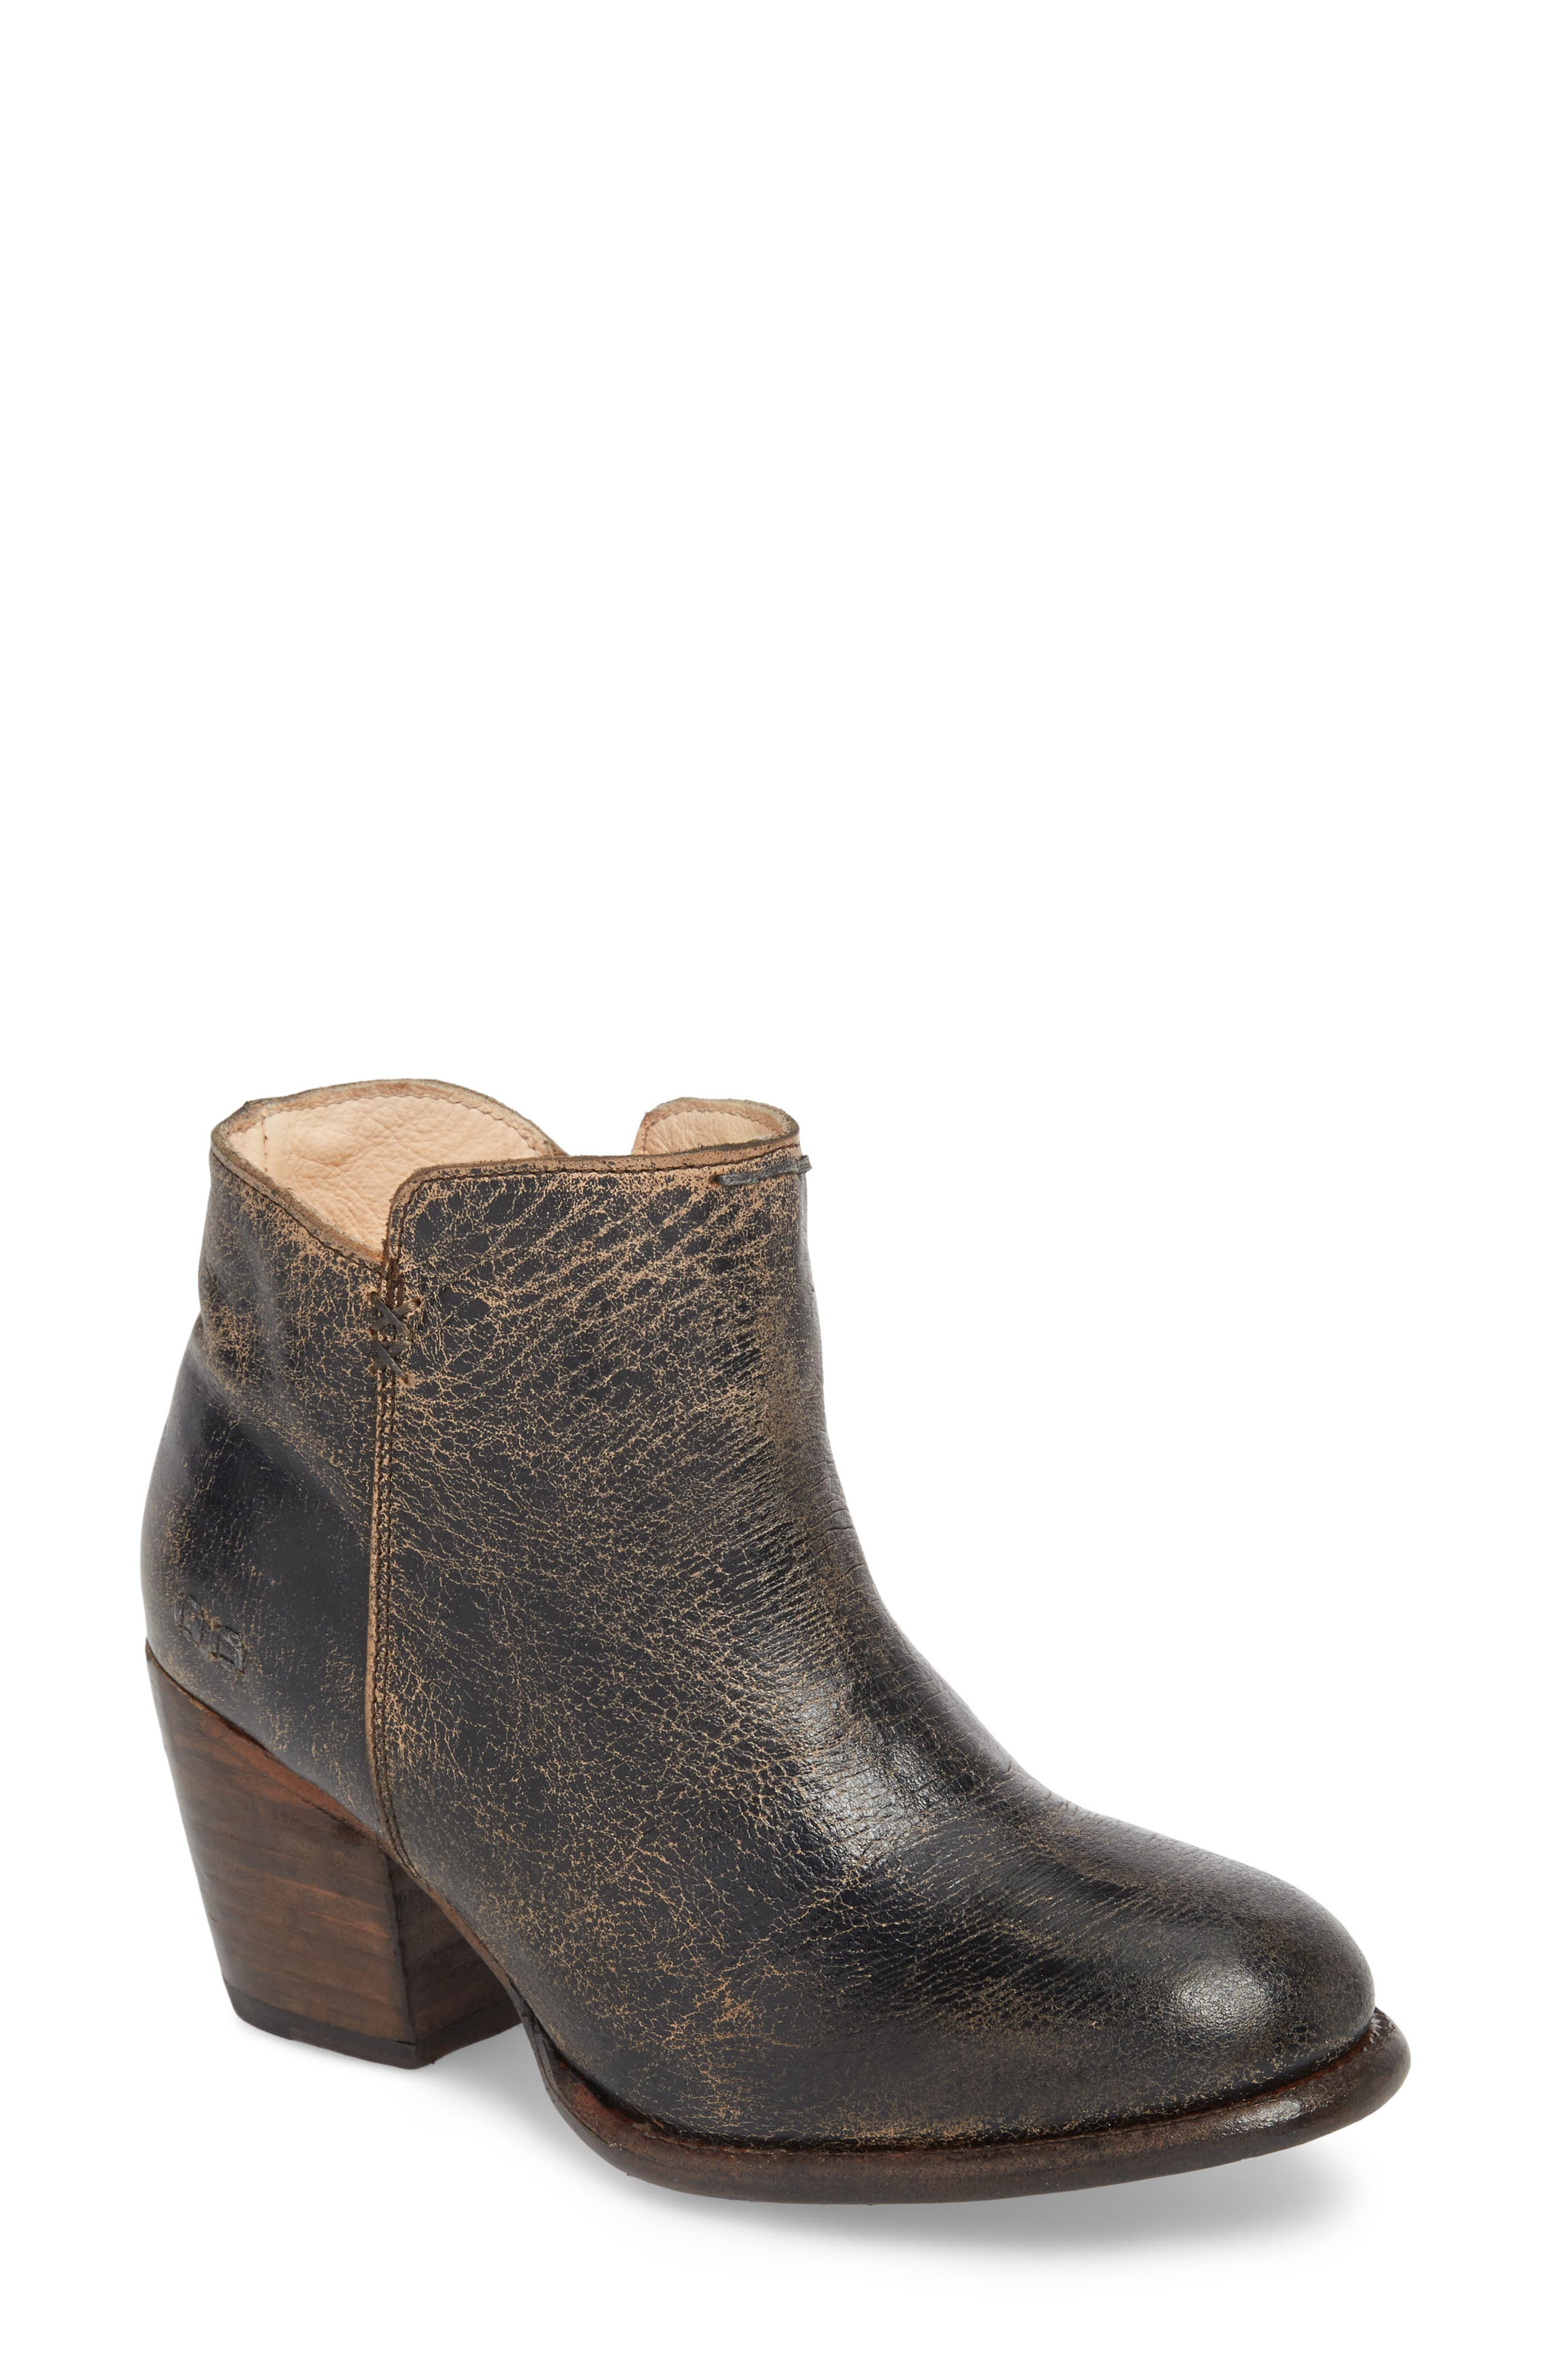 Bed Stu Yell Bootie- Black